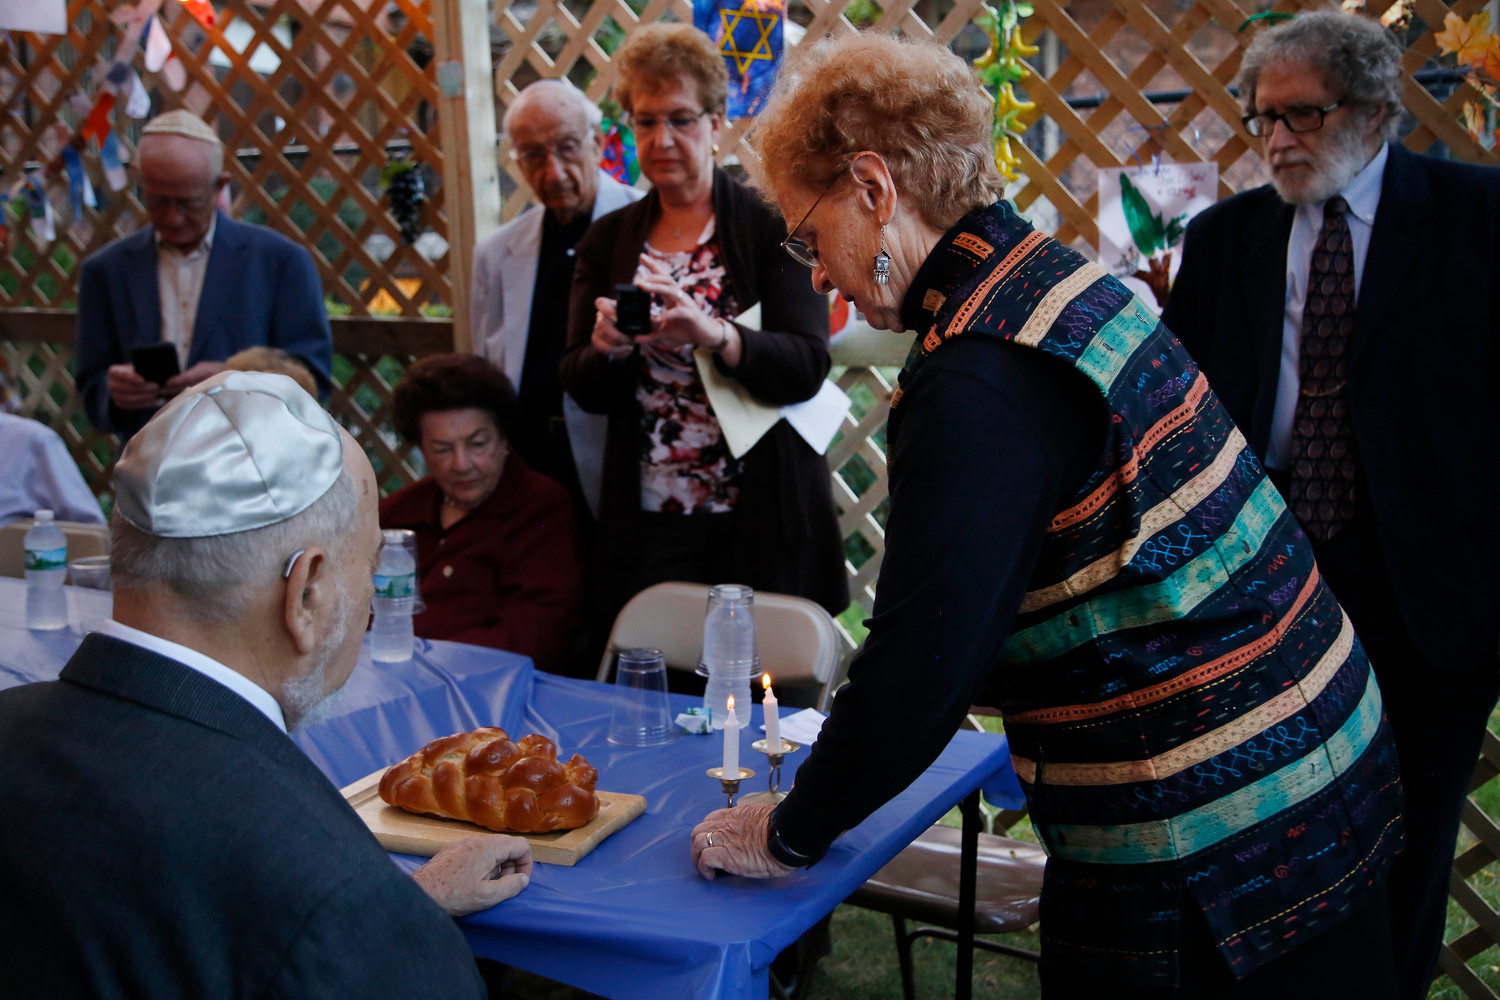 Rabbi Emeritus Paul Kushner and Shoshana Kushner lit wcandles and broke the challah bread.